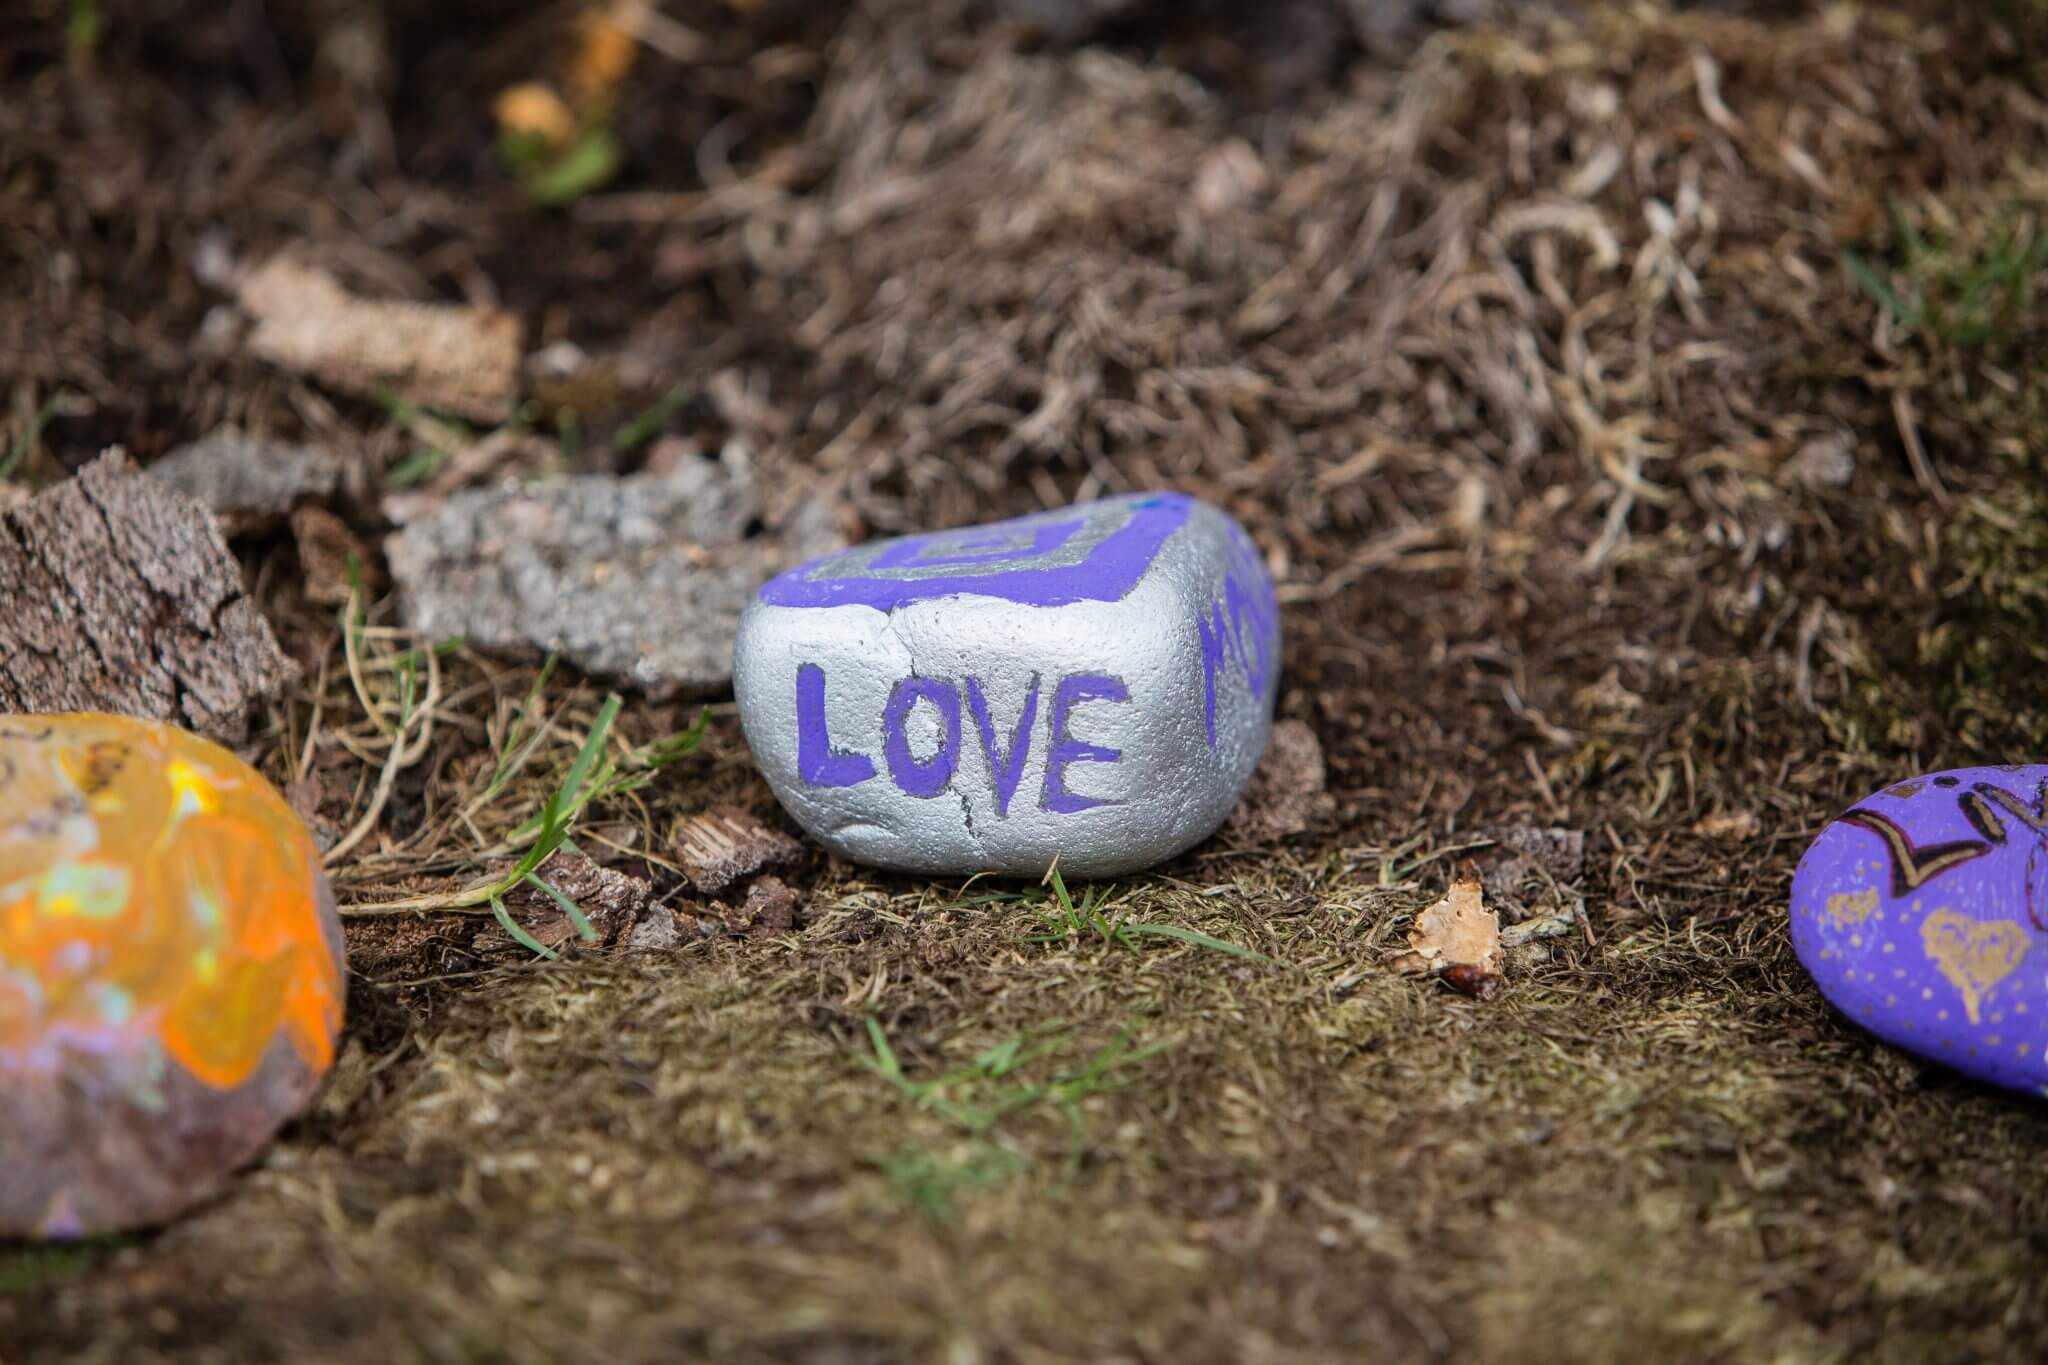 stone with love written on it